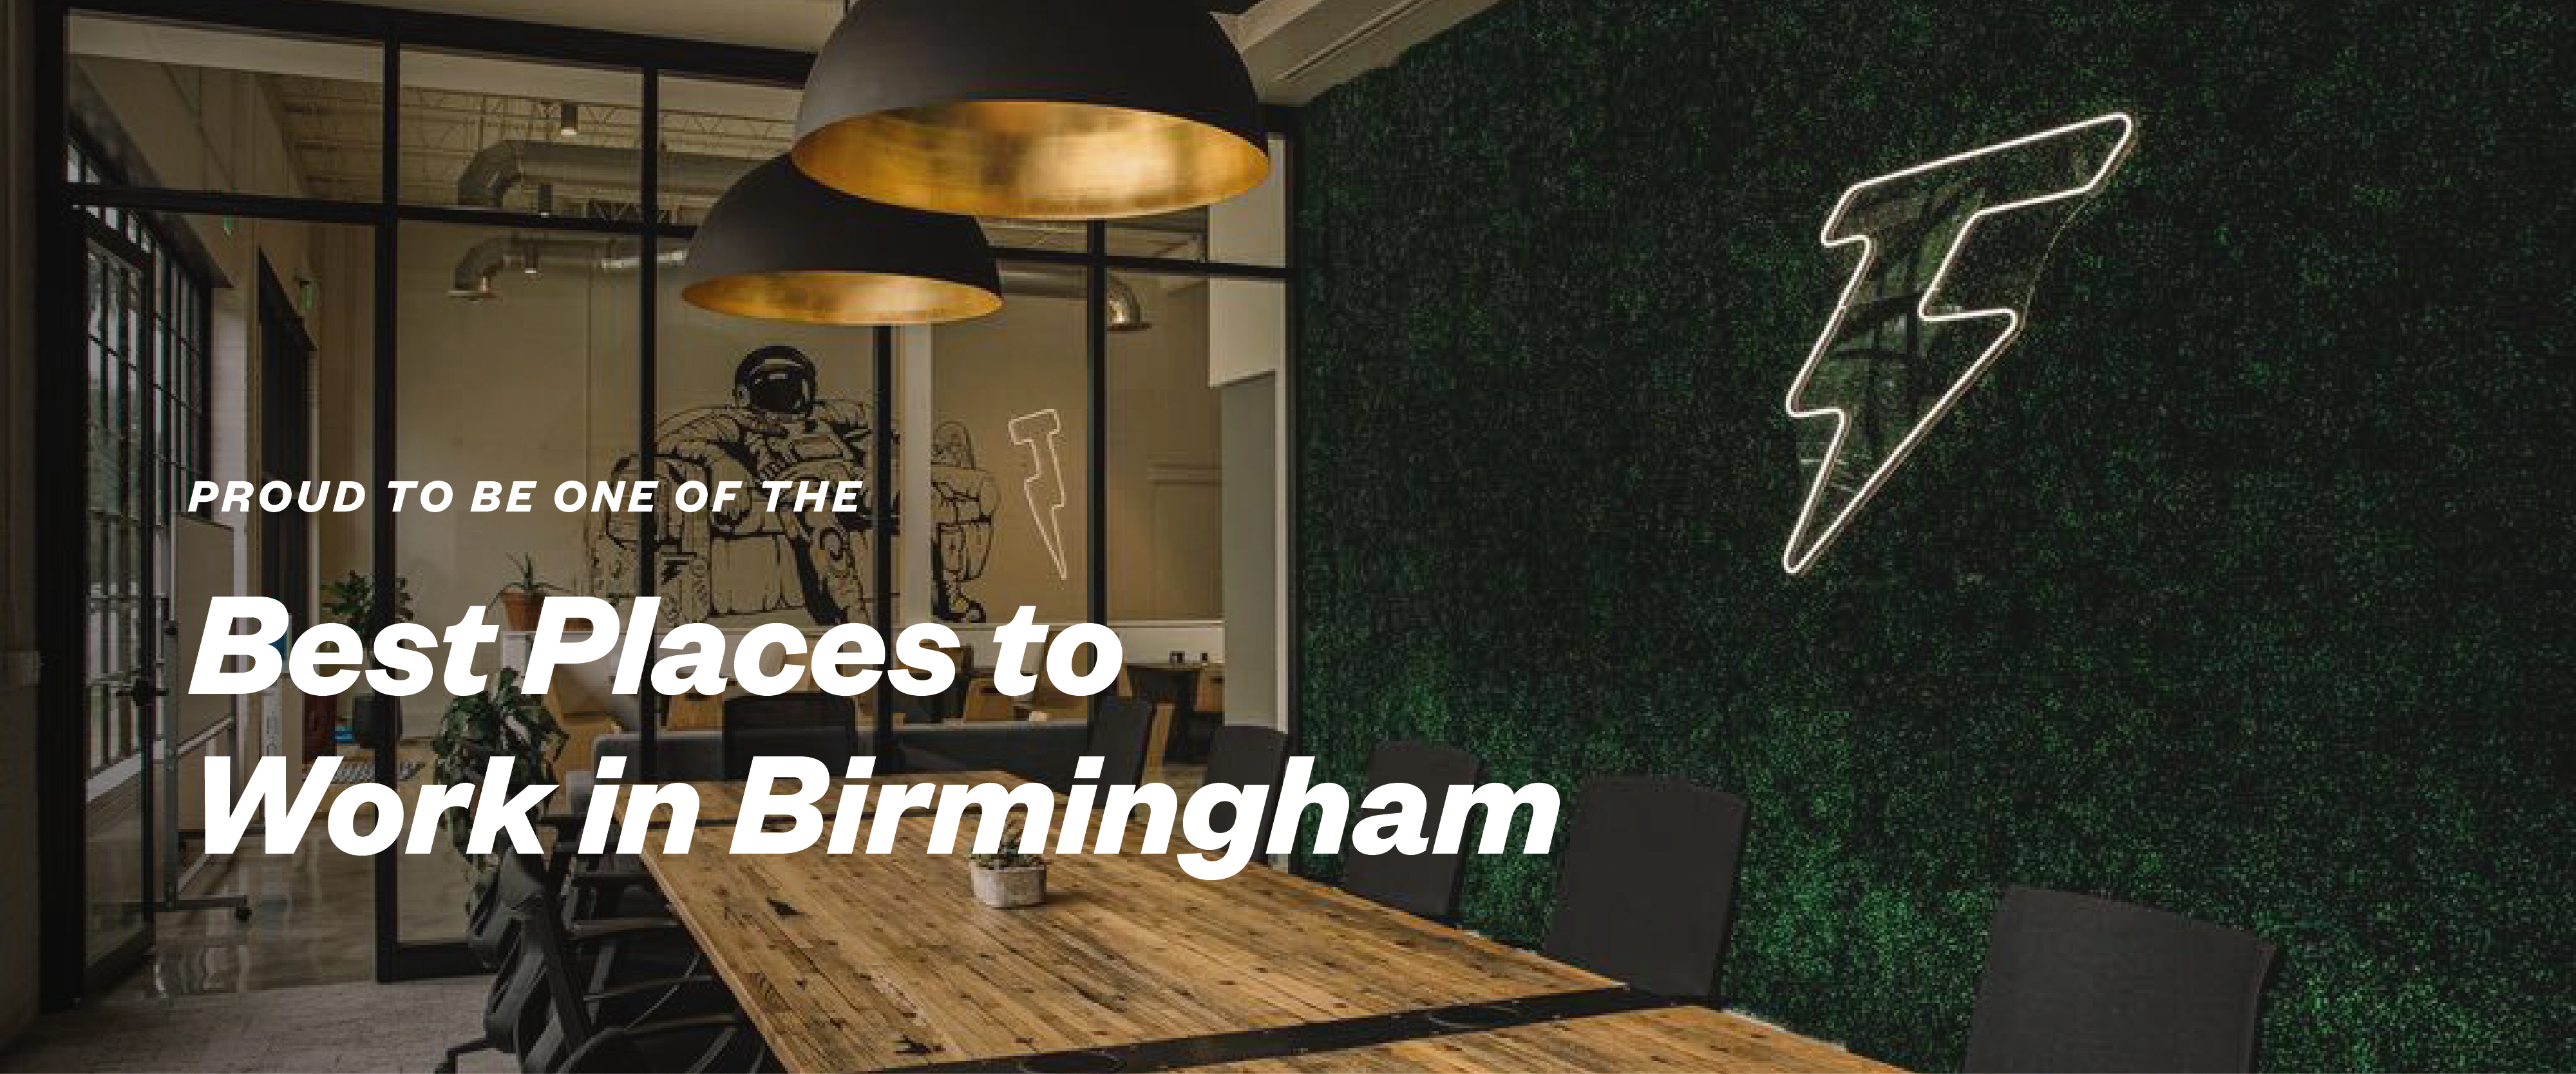 """Telegraph Recognized by BBJ as a """"Best Place to Work"""" in Birmingham"""